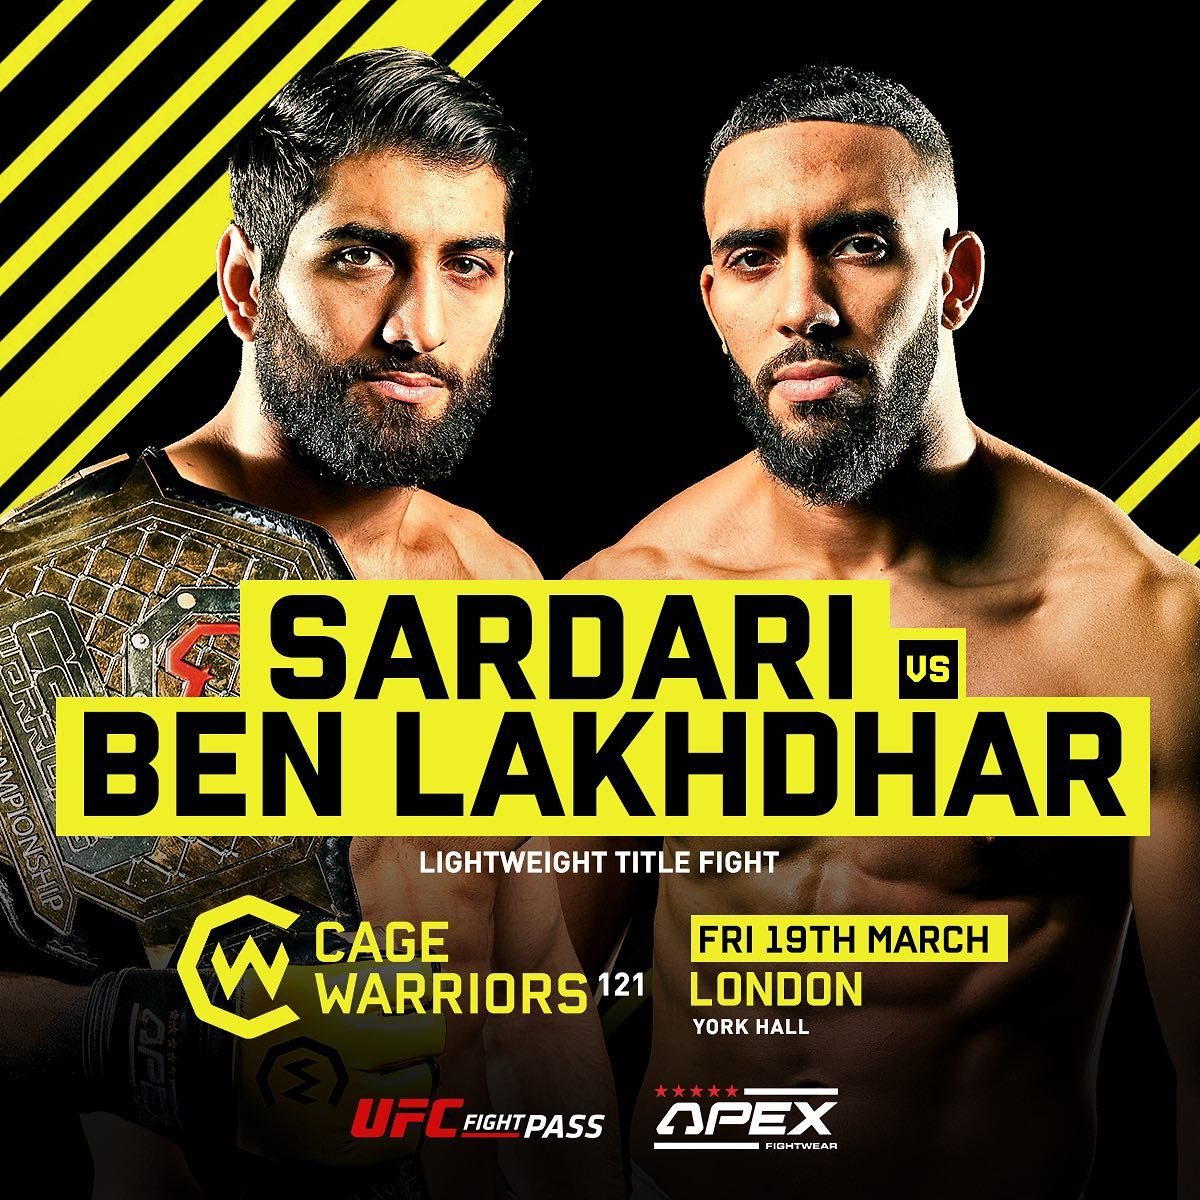 Cage Warriors 121 - The Trilogy